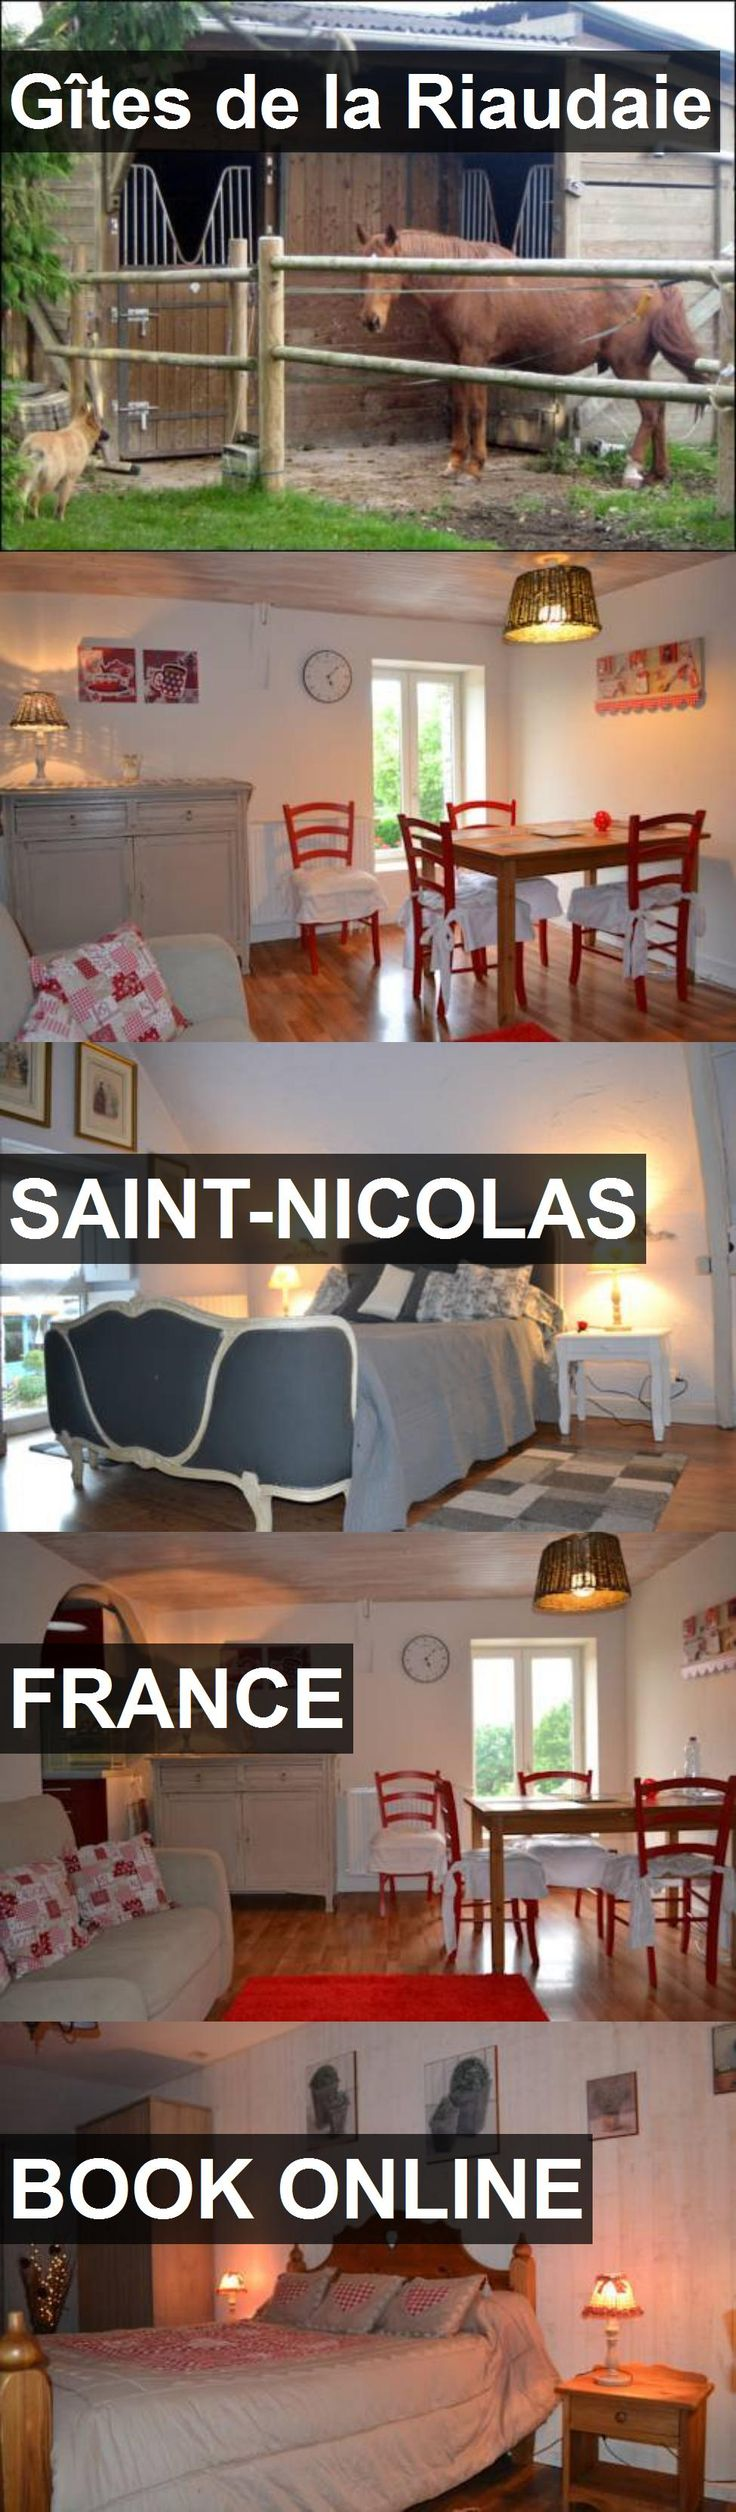 Hotel Gîtes de la Riaudaie in Saint-Nicolas, France. For more information, photos, reviews and best prices please follow the link. #France #Saint-Nicolas #travel #vacation #hotel